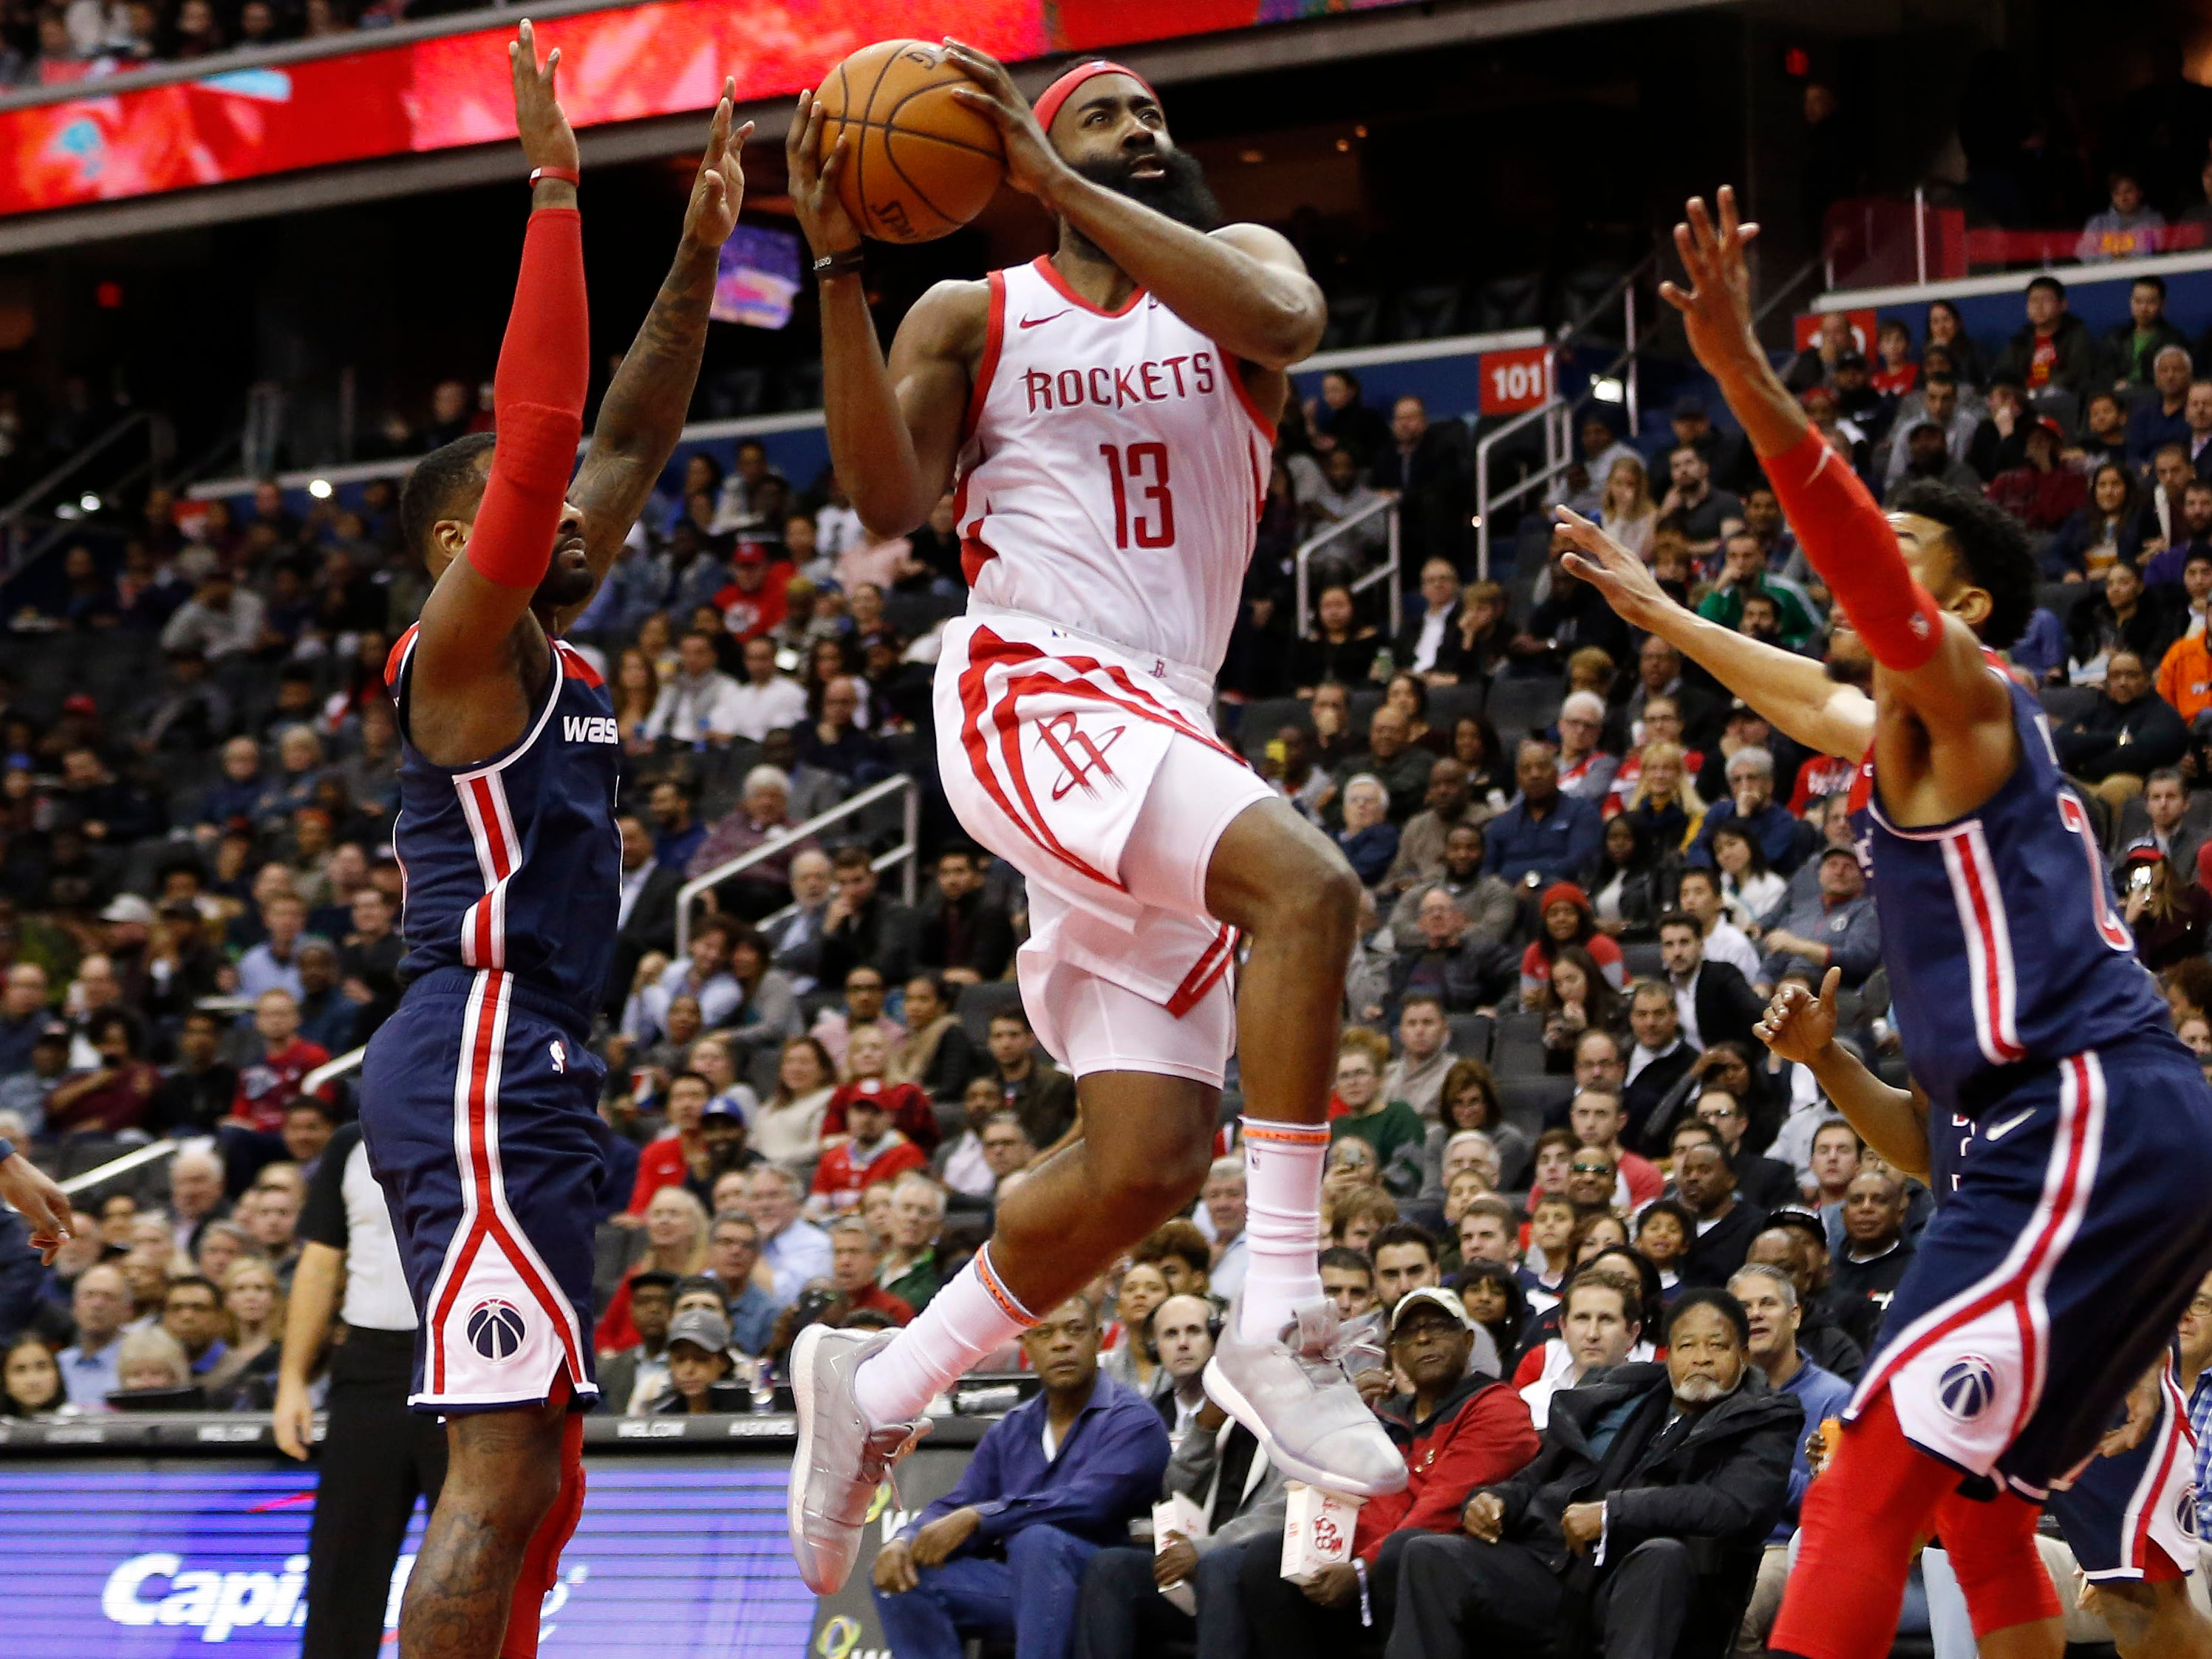 Nov. 26: Rockets guard James Harden (13) drives to the bucket between Wizards defenders John Wall (2) and Otto Porter Jr. (22) for two of his season-high 54 points in Washington.